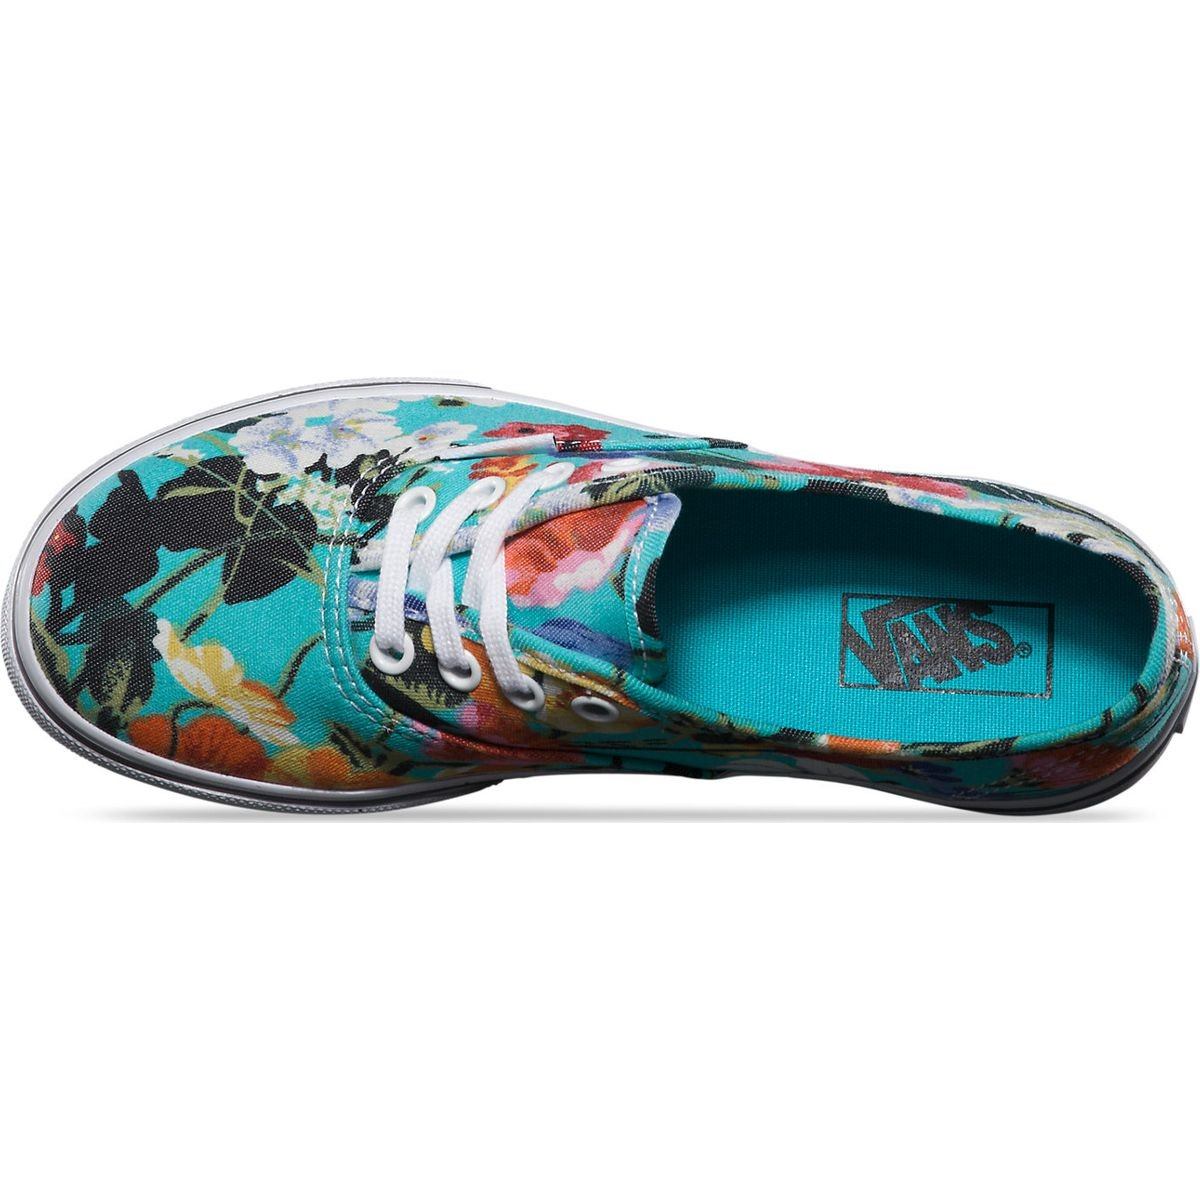 Vans Authentic Lo Pro Floral Youth Shoes - Smoked Pearl True White - 4Y 3c0250242596